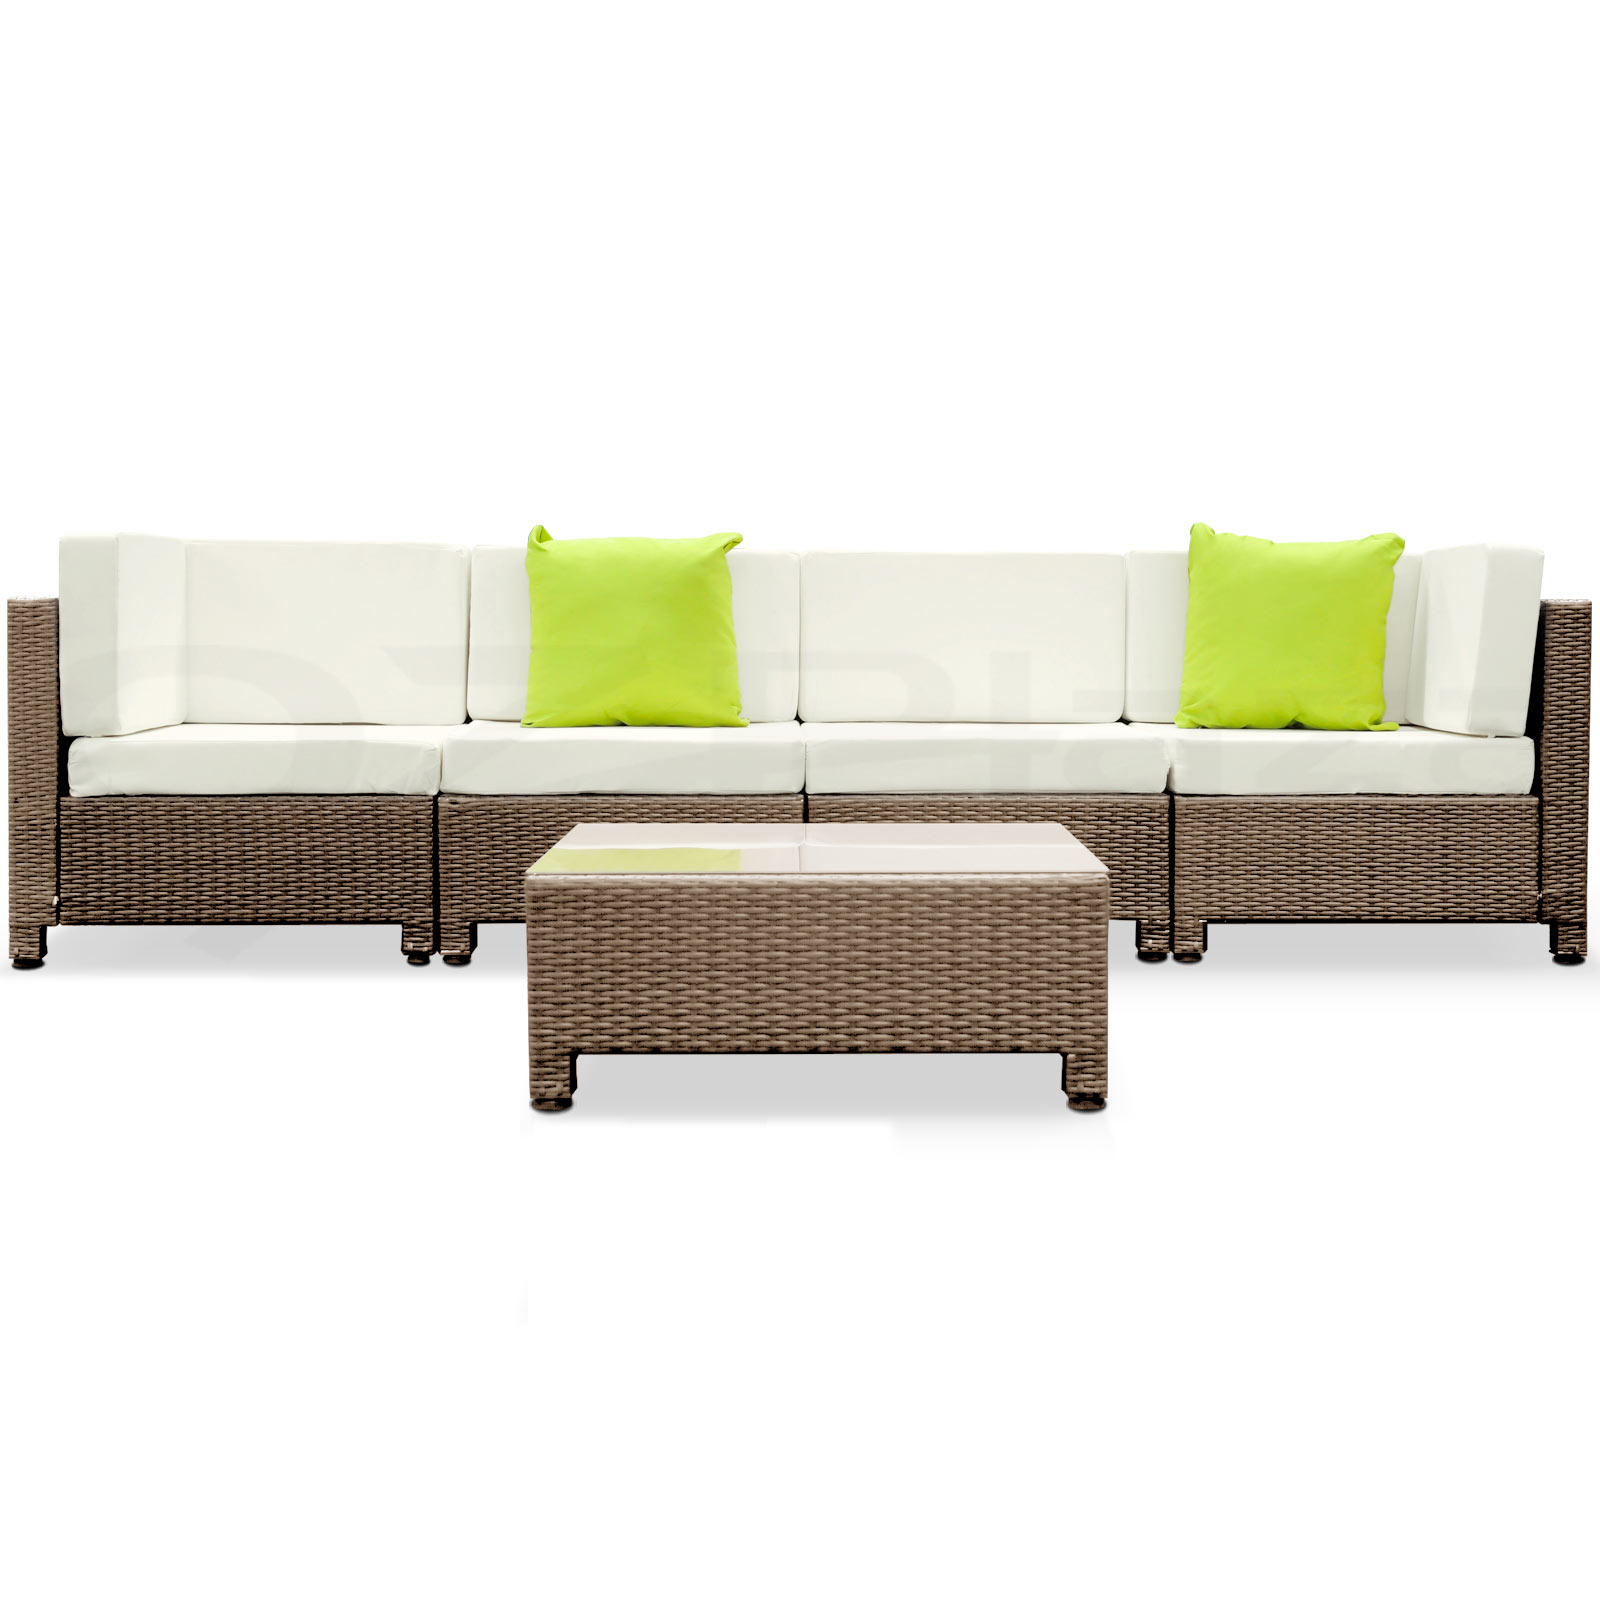 brown outdoor furniture wicker 5pc pe rattan set garden lounge sofa setting be ebay. Black Bedroom Furniture Sets. Home Design Ideas